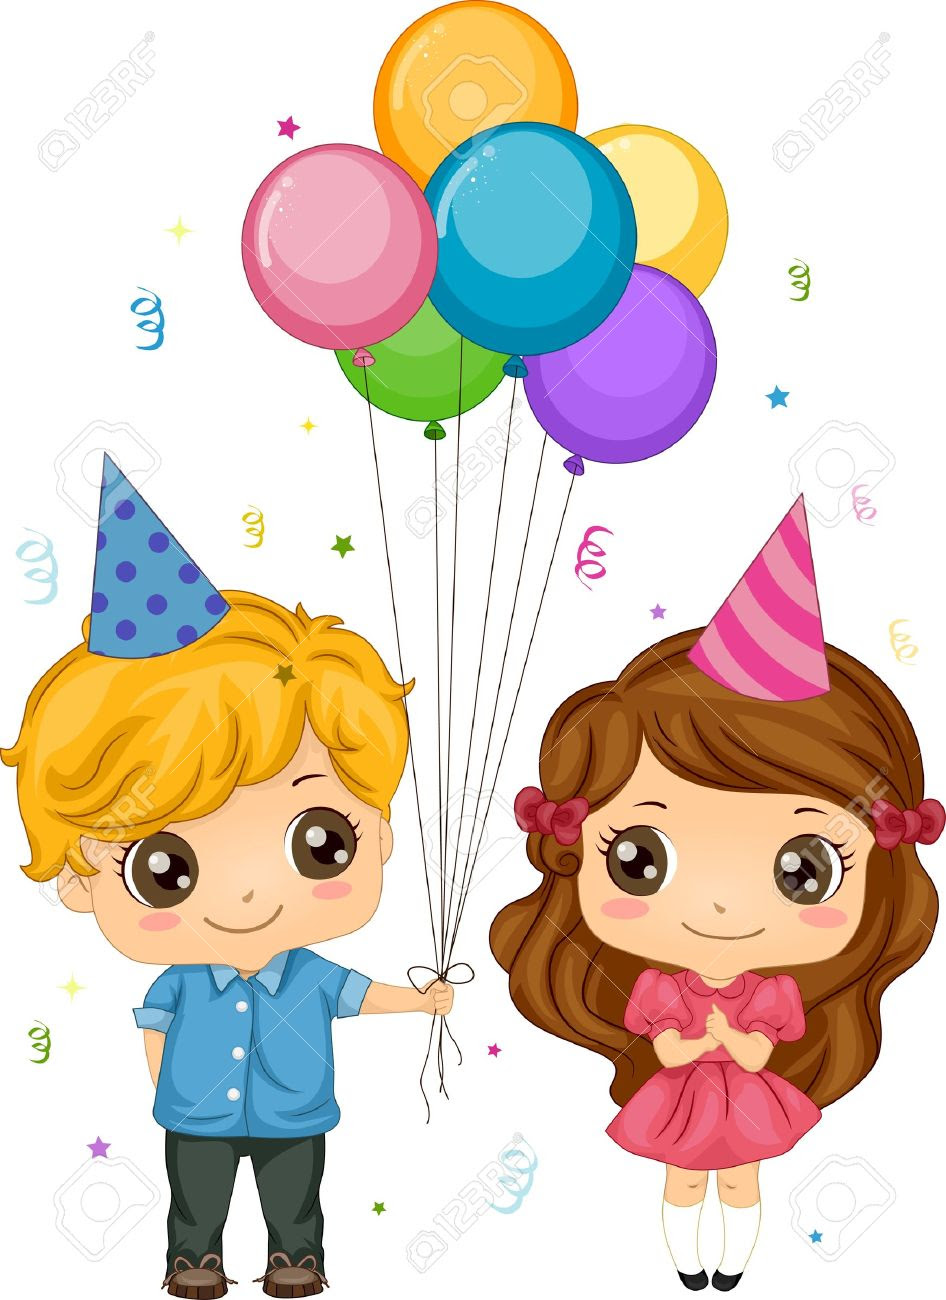 http://previews.123rf.com/images/lenm/lenm1105/lenm110500008/9456911-Illustration-of-a-Boy-Giving-Balloons-to-a-Girl-Stock-Illustration-cartoon-kids-clipart.jpg